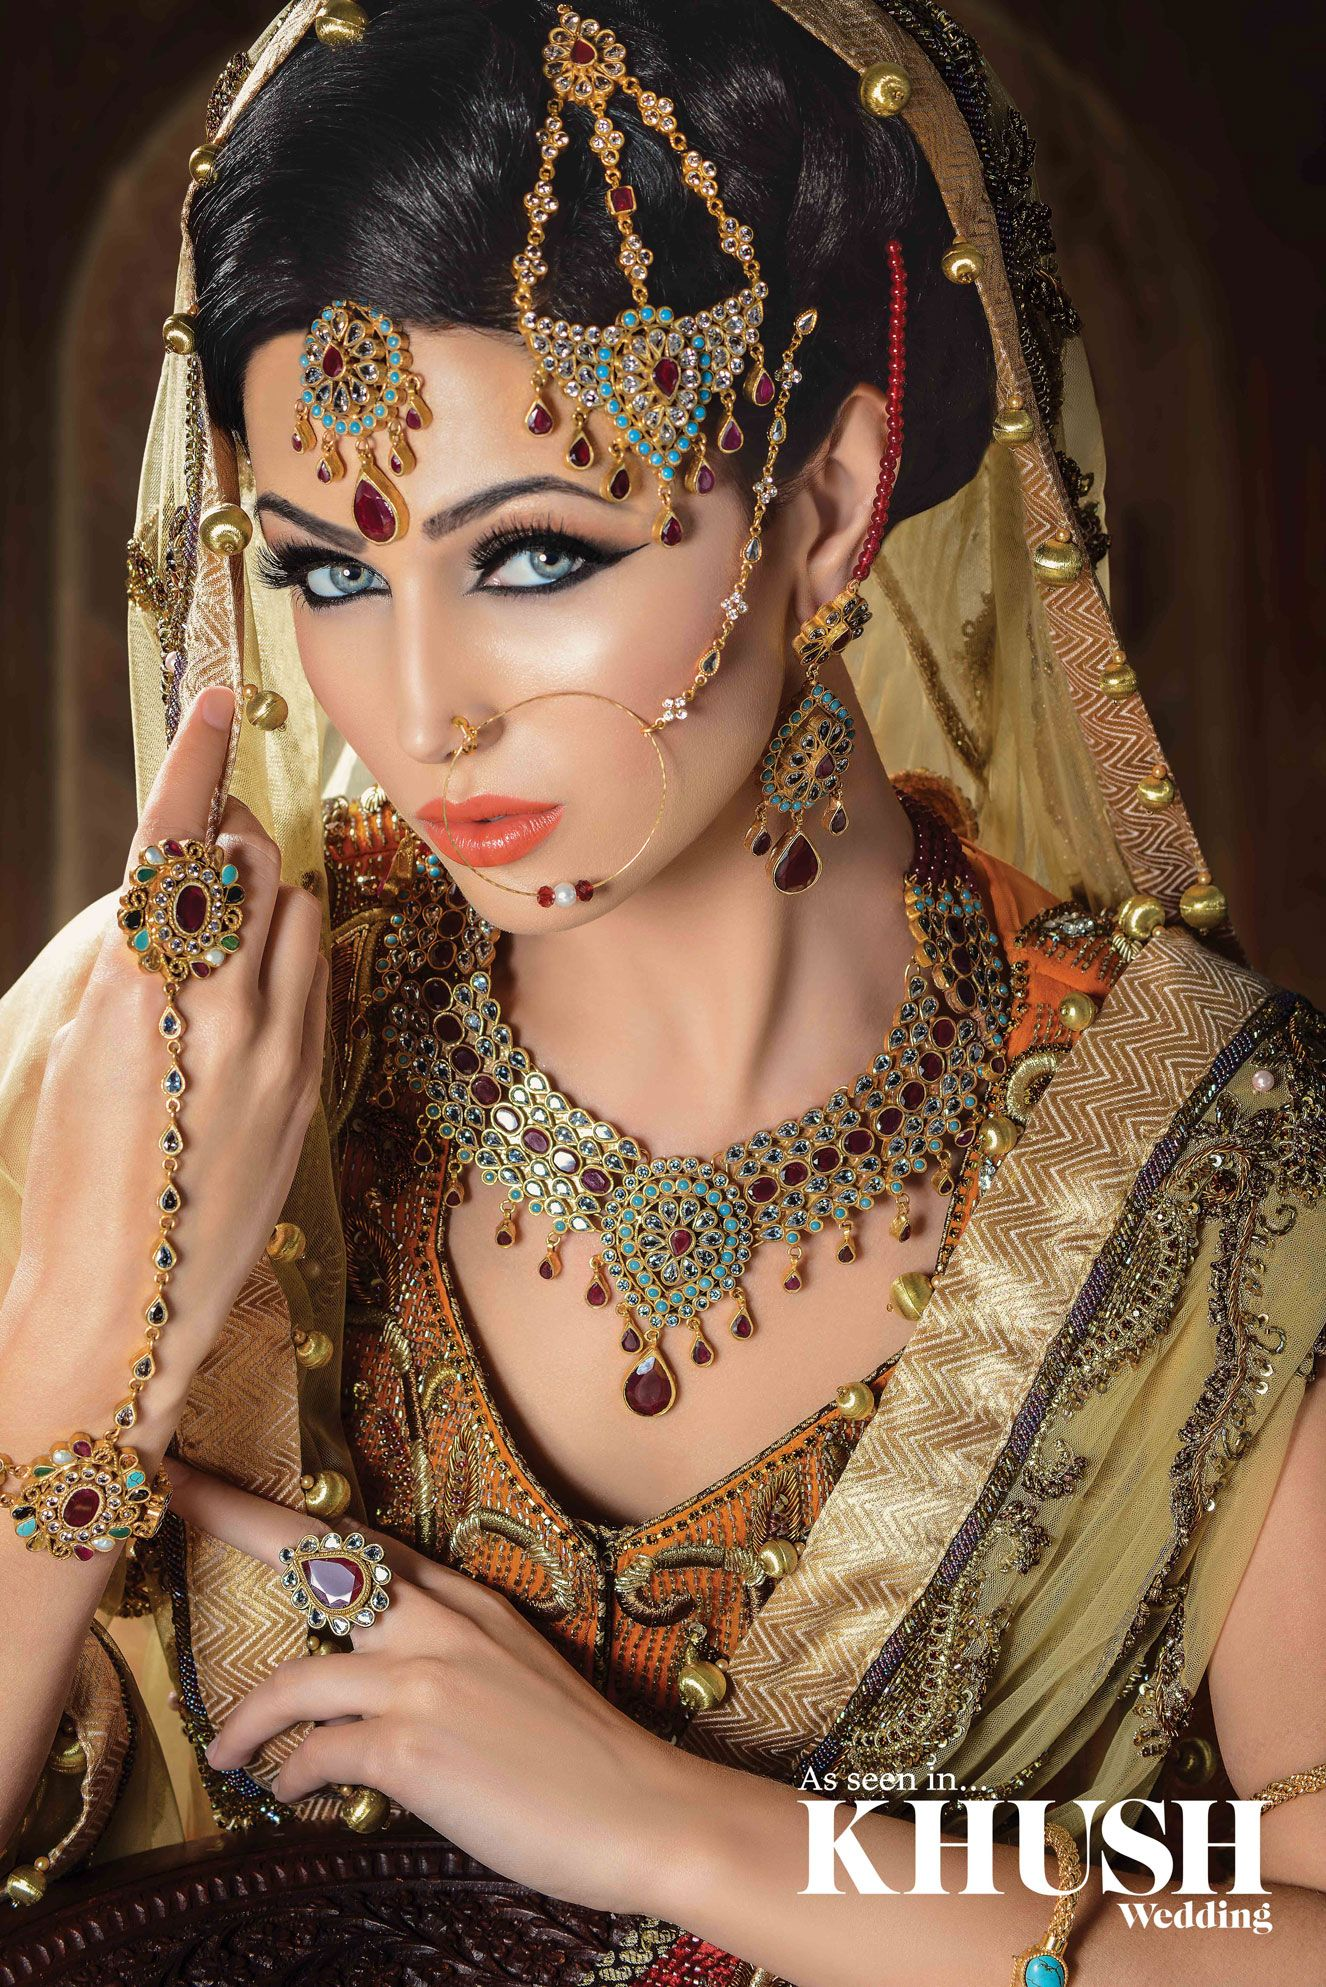 Raya Beauty exquisite makeup look featured in Khush